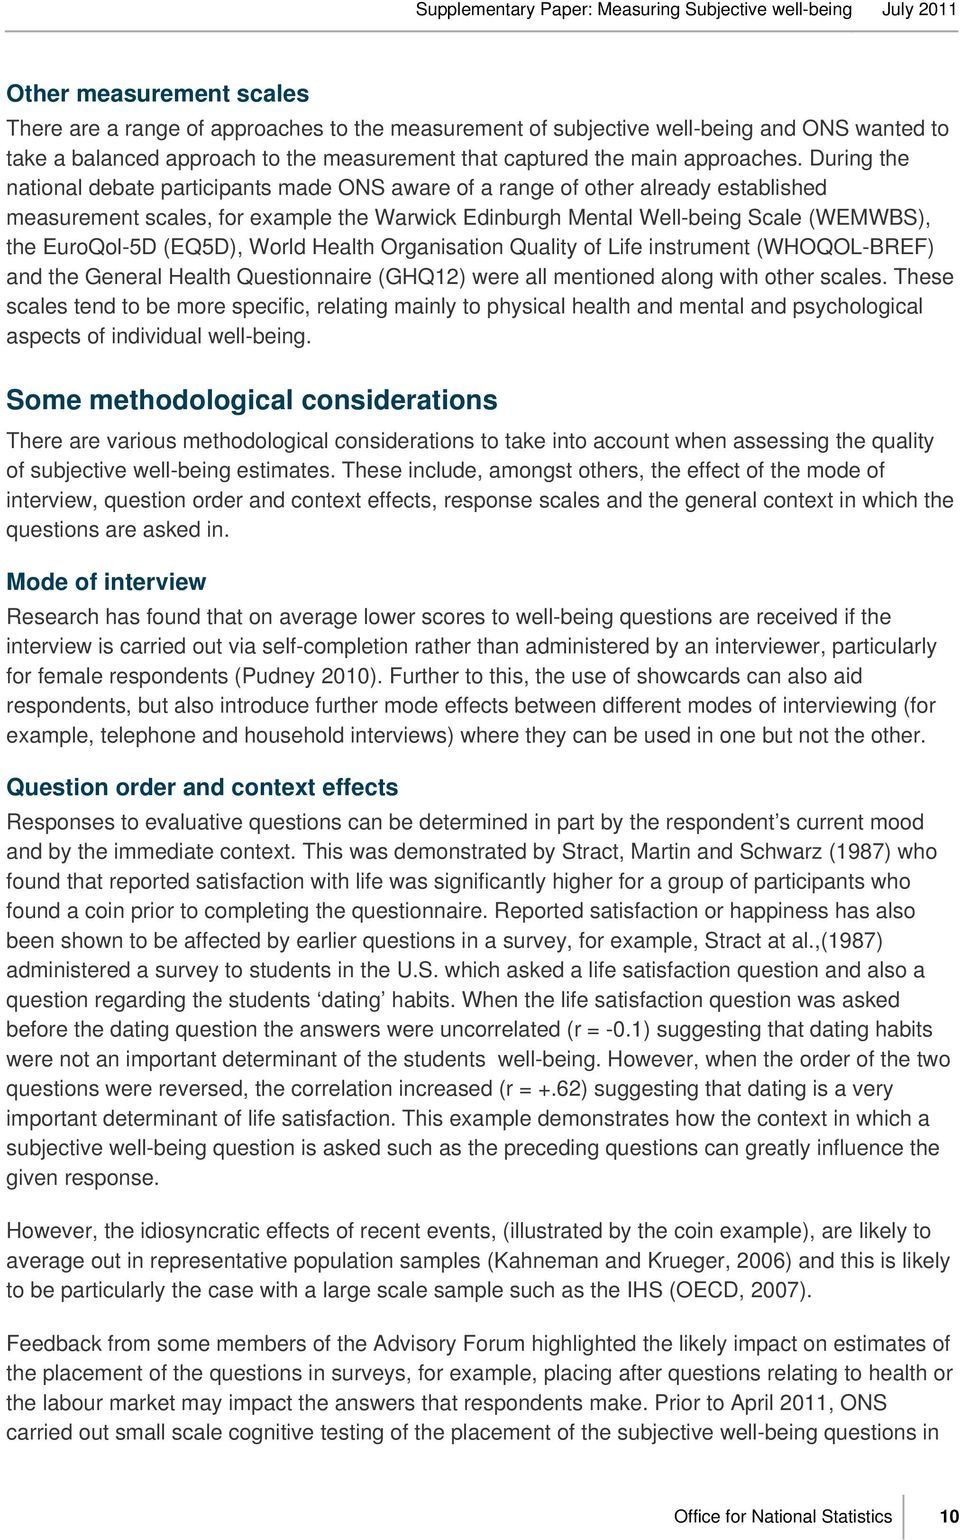 subjective well being questionnaire pdf